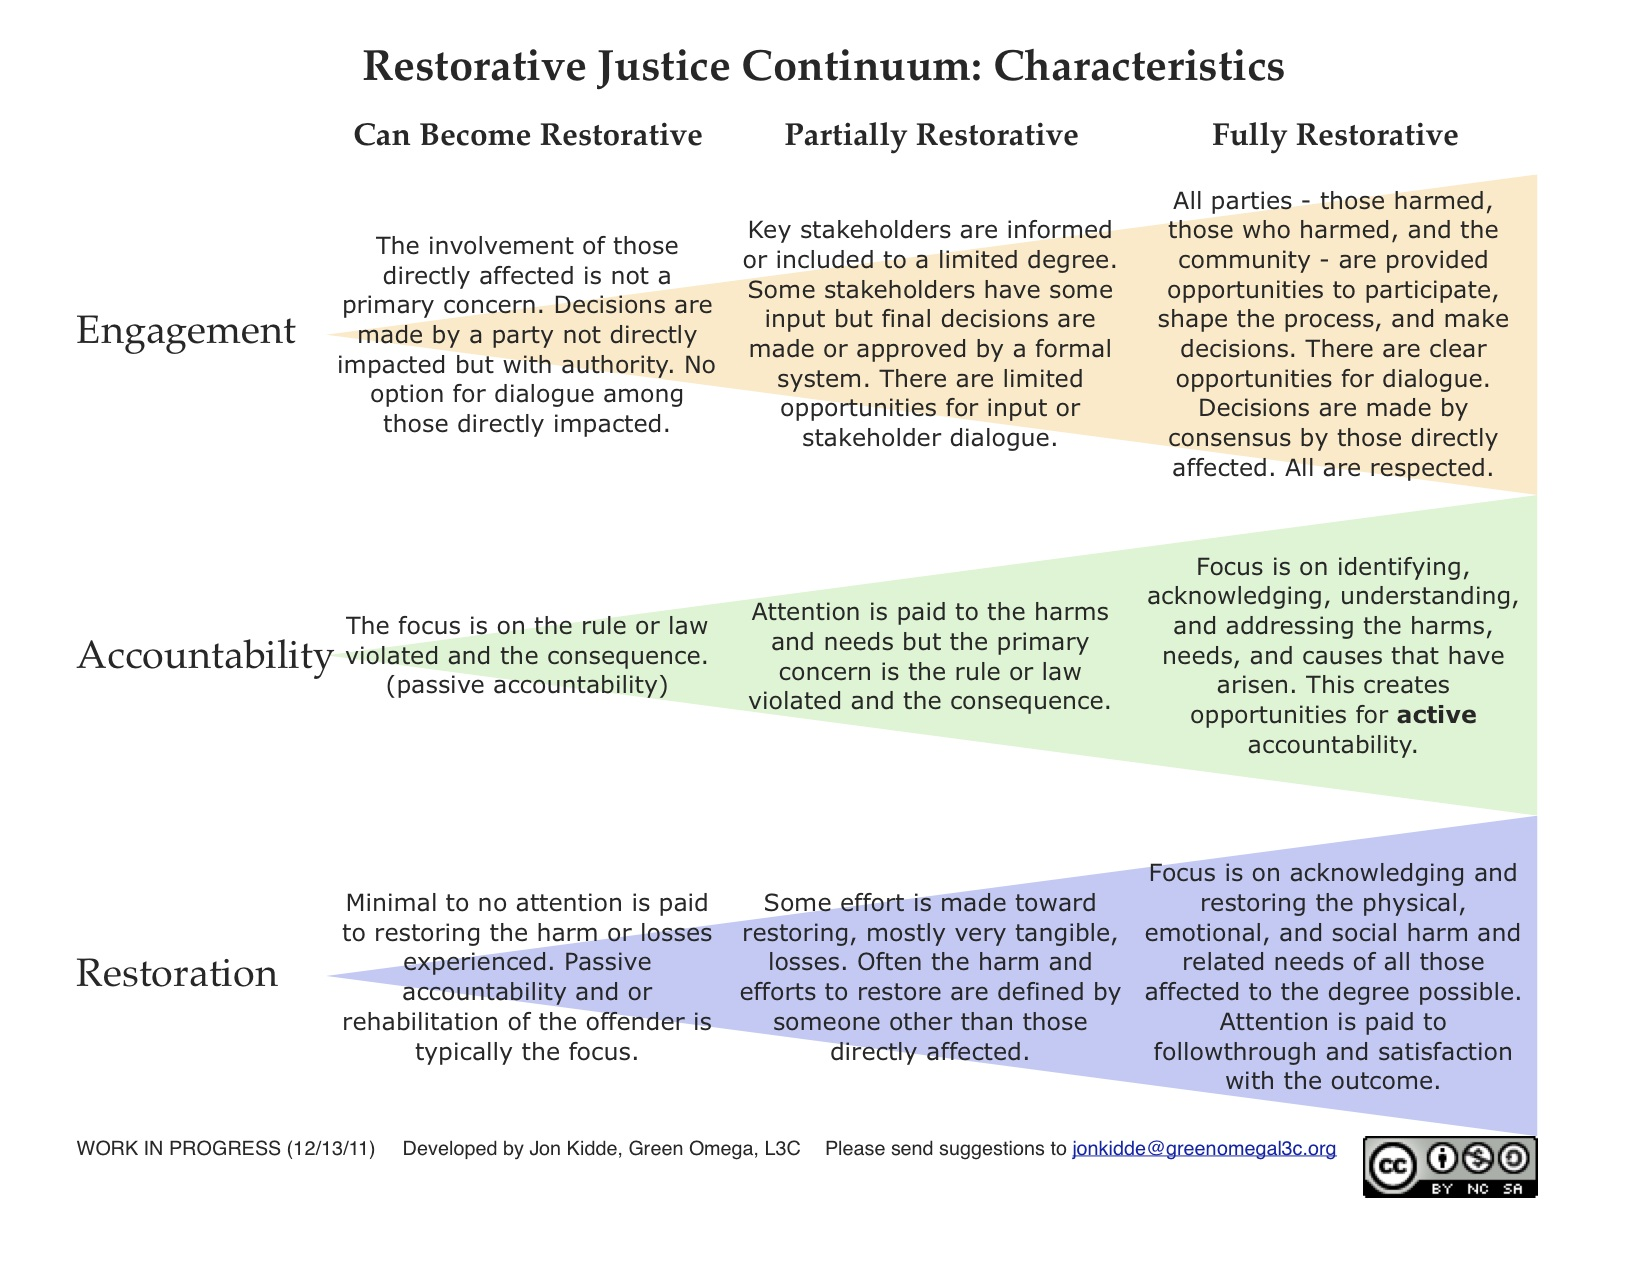 young offenders an evaluation of restorative justice Mainstreaming restorative justice for young offenders through youth conferencing:  an exploratory evaluation of restorative justice schemes london:.